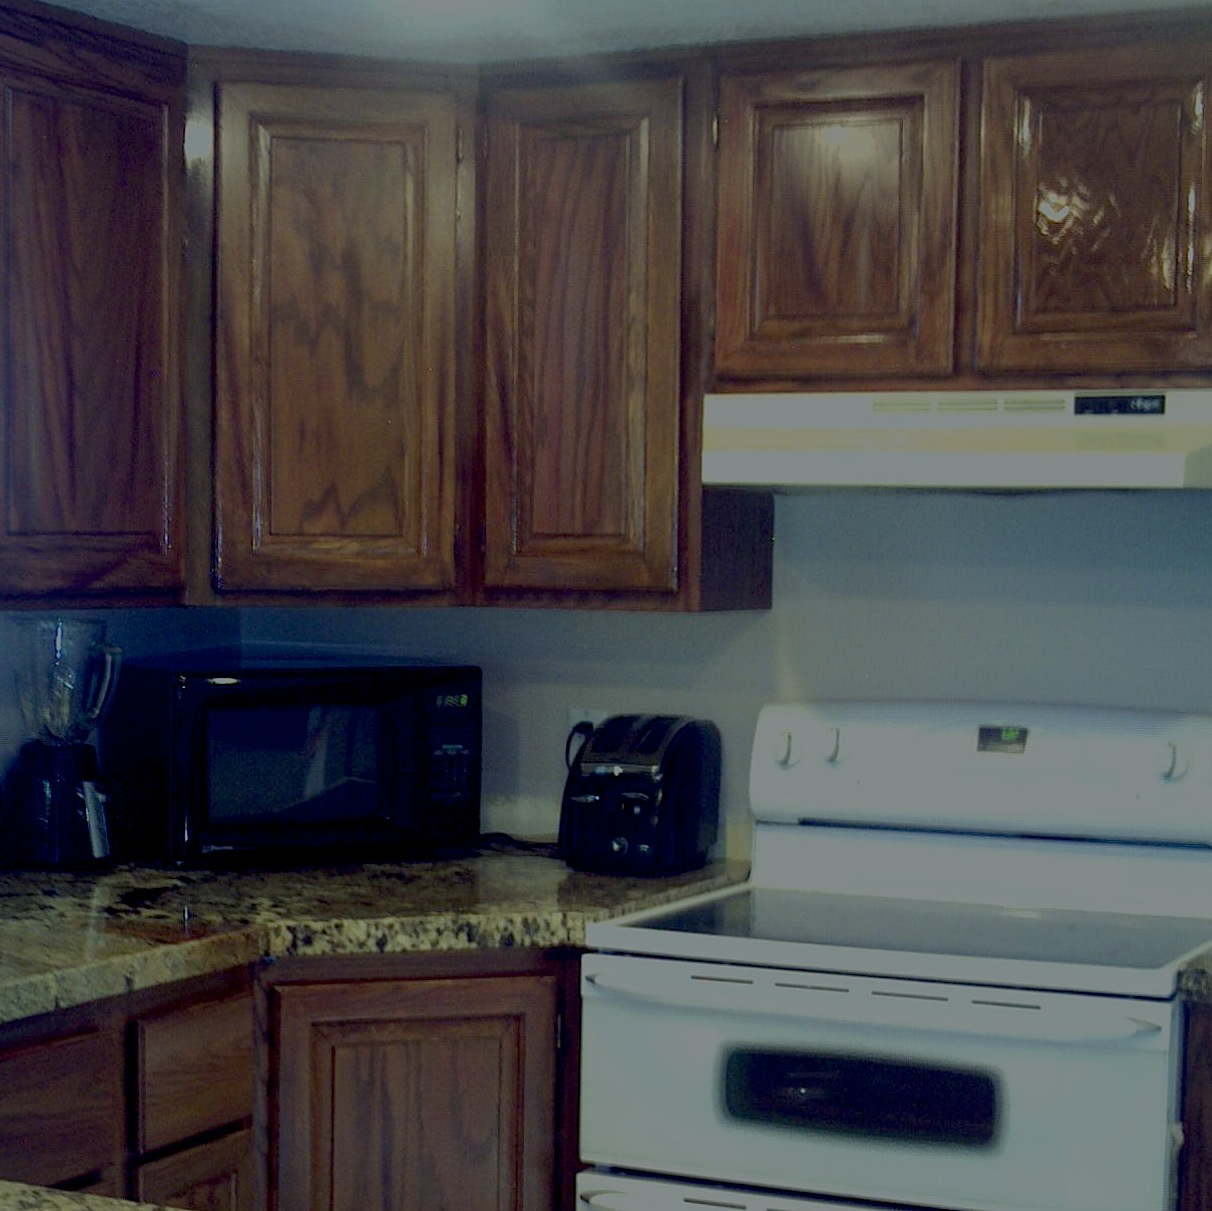 Matching Countertops With Cabinets Cabinets Refinished To Match Countertops